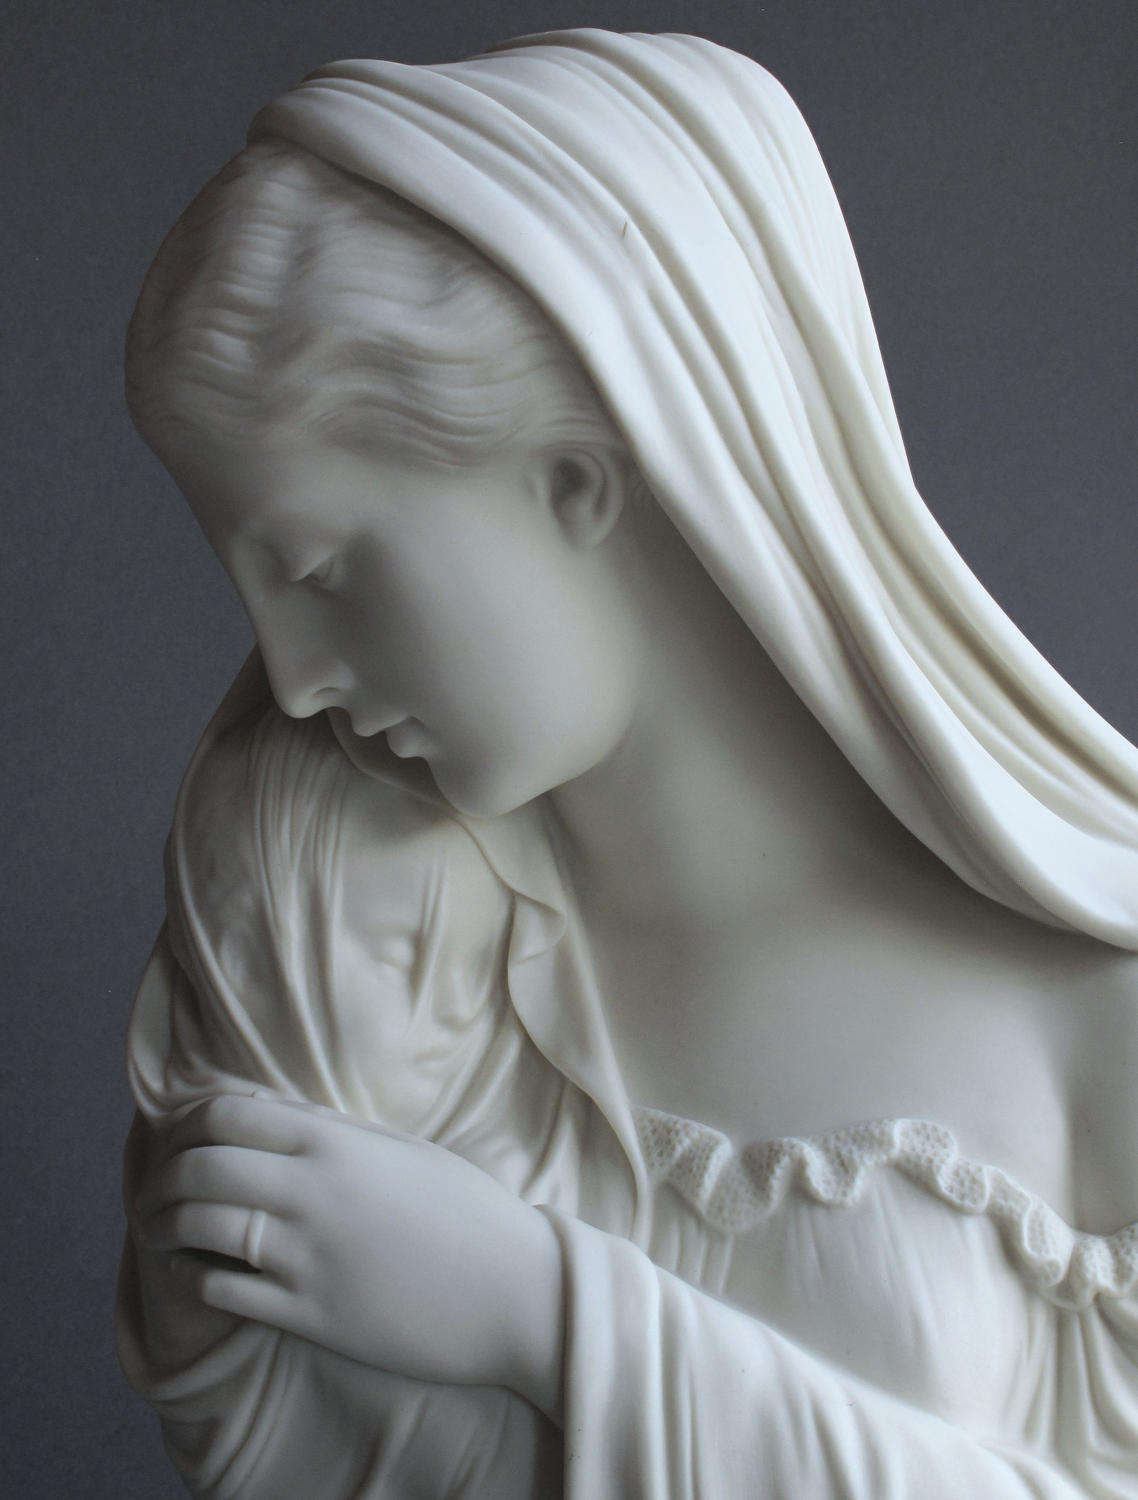 A Copeland Parian figure of The Mother, by Monti